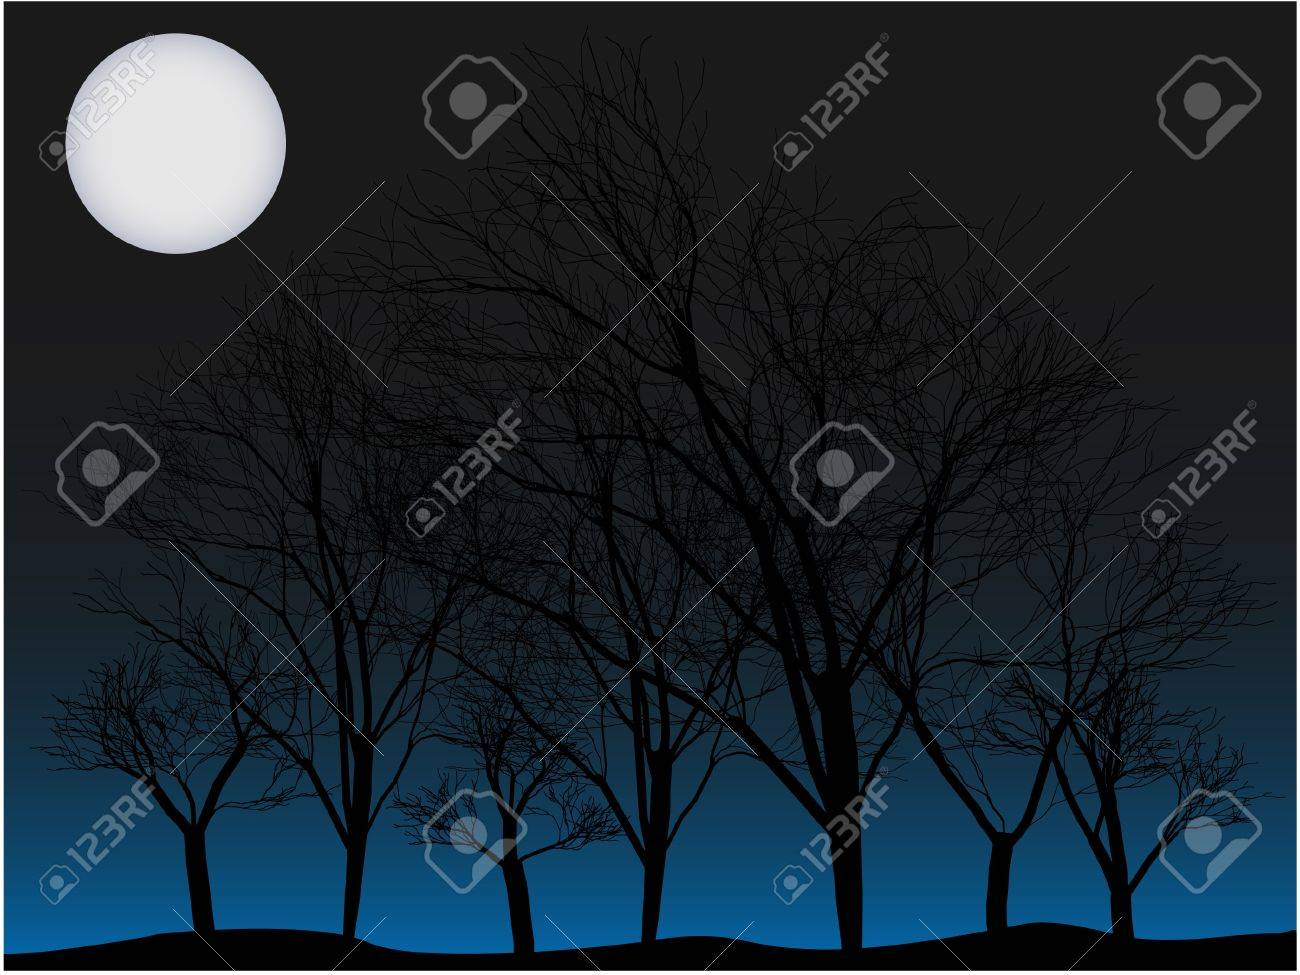 Several creepy baron forest of  Creepy Woods Moon